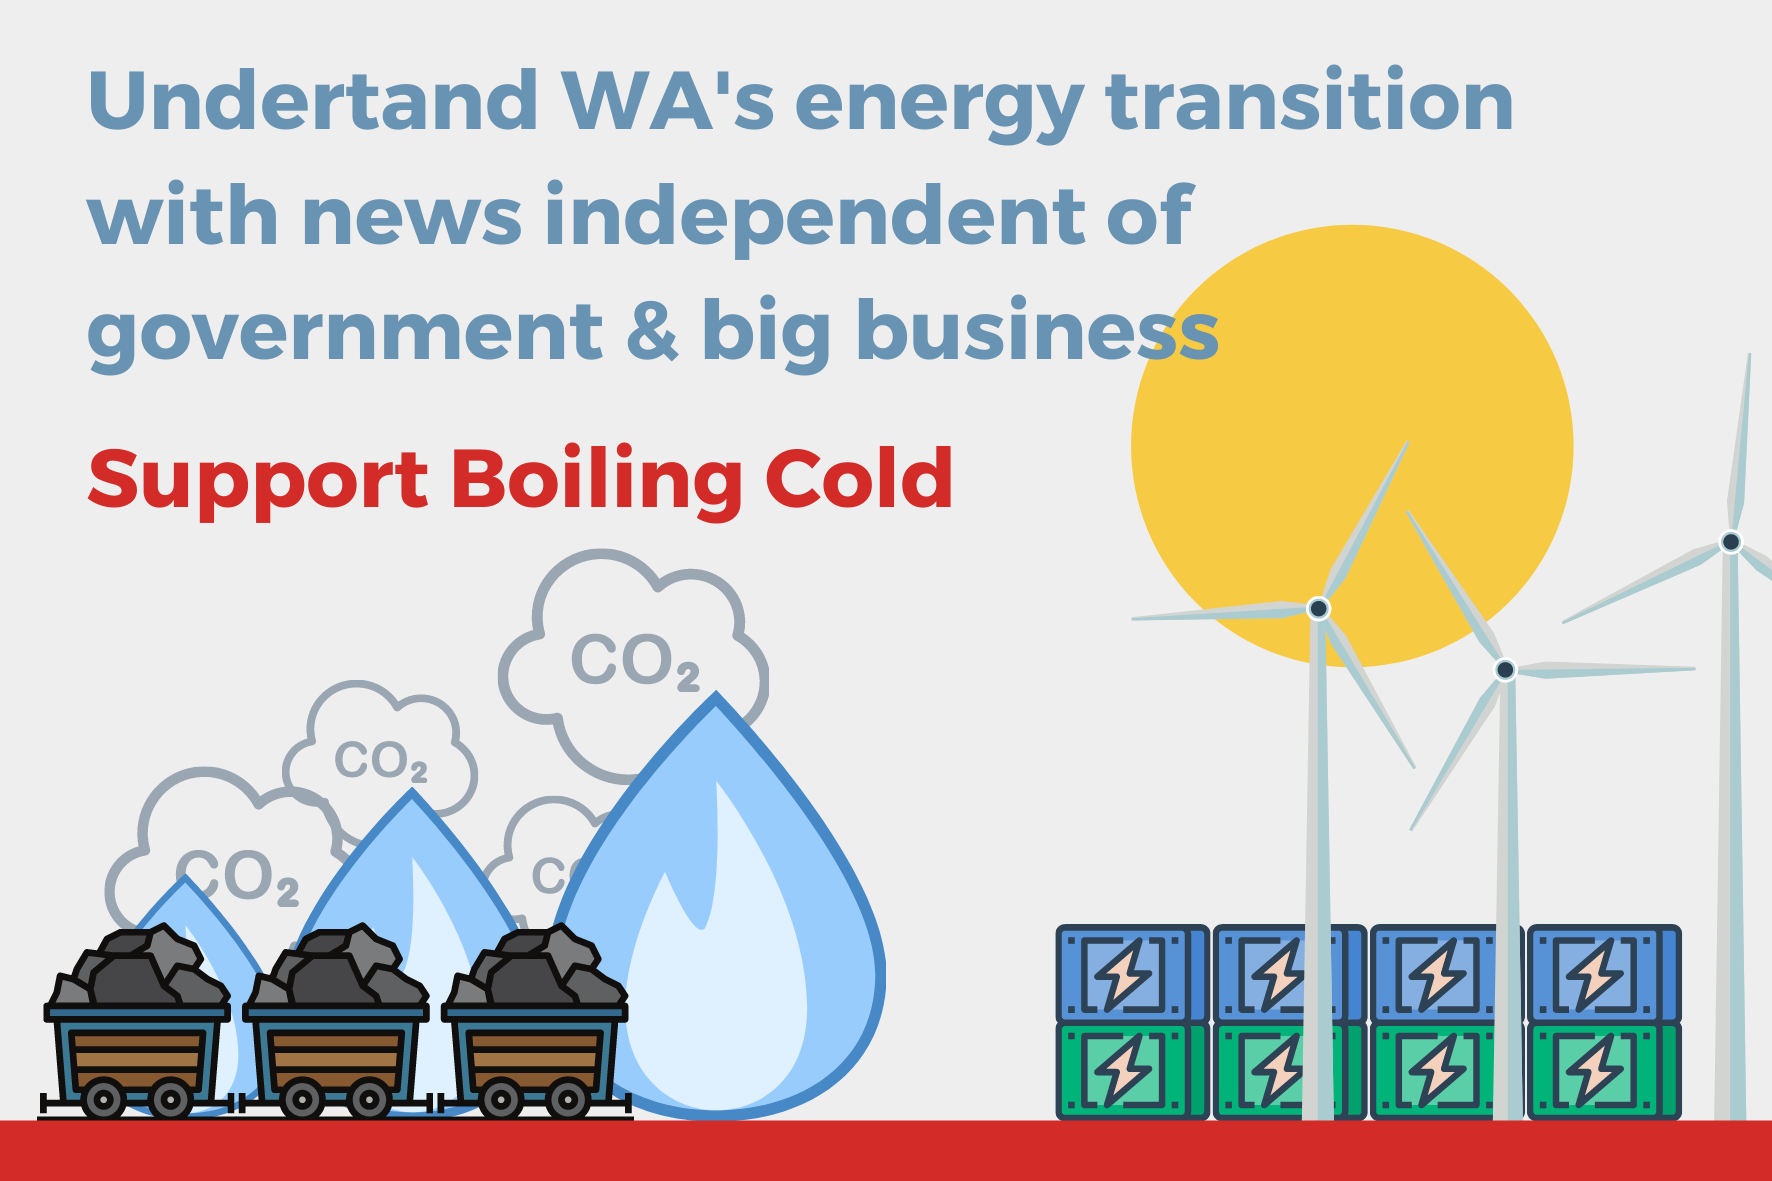 Understand WA's energy transition with news independent of government and big business. Support Boiling Cold.